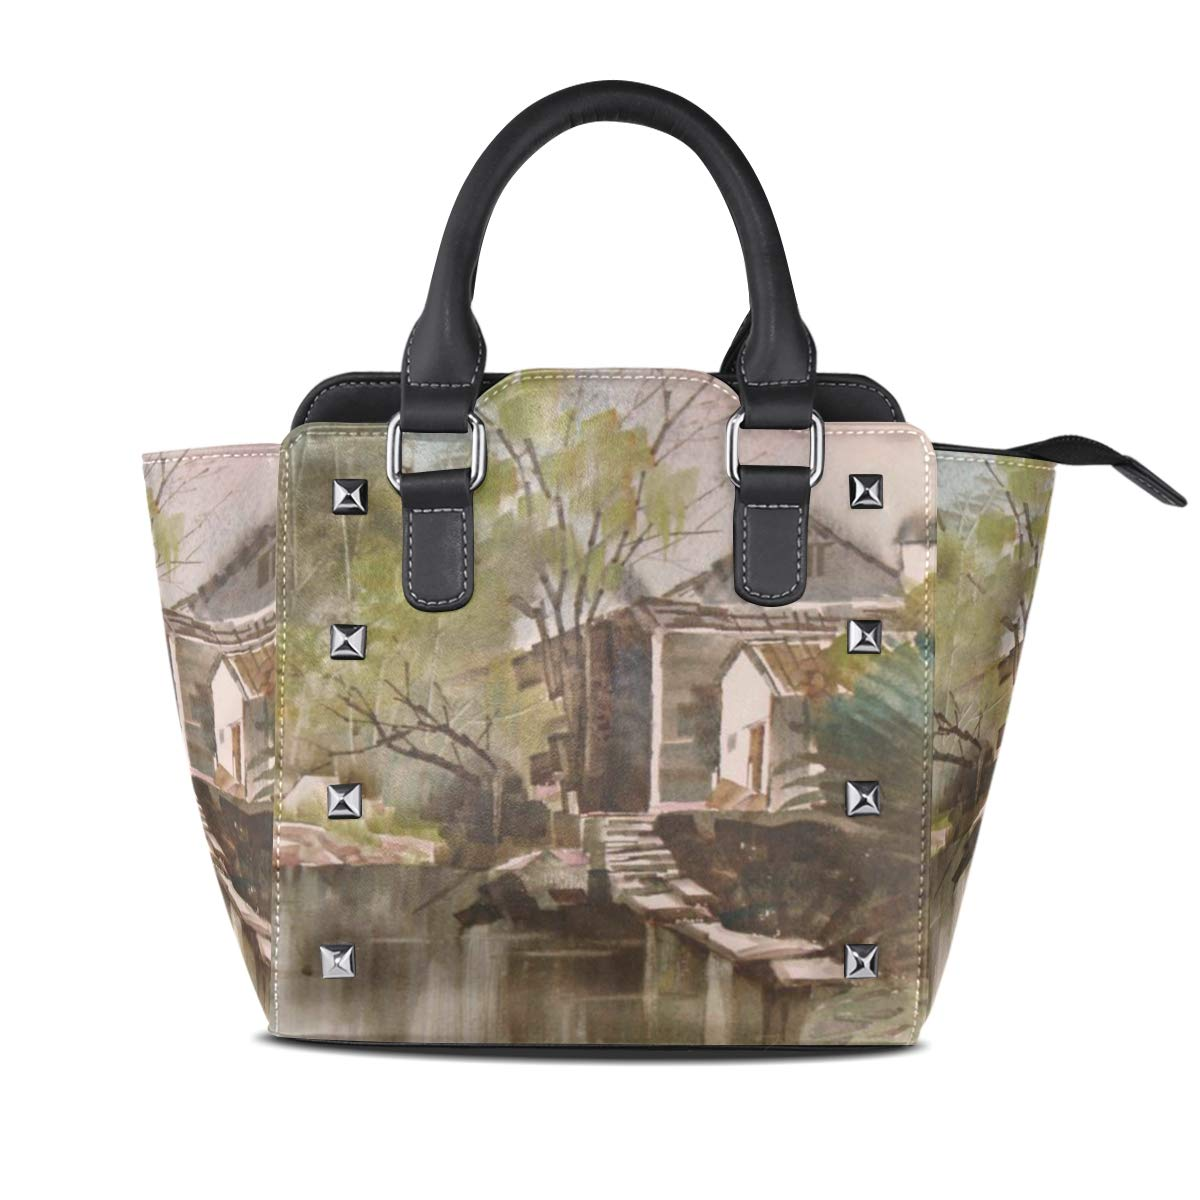 Design 3 Handbag Town Seaside Flowers Trees Genuine Leather Tote Rivet Bag Shoulder Strap Top Handle Women